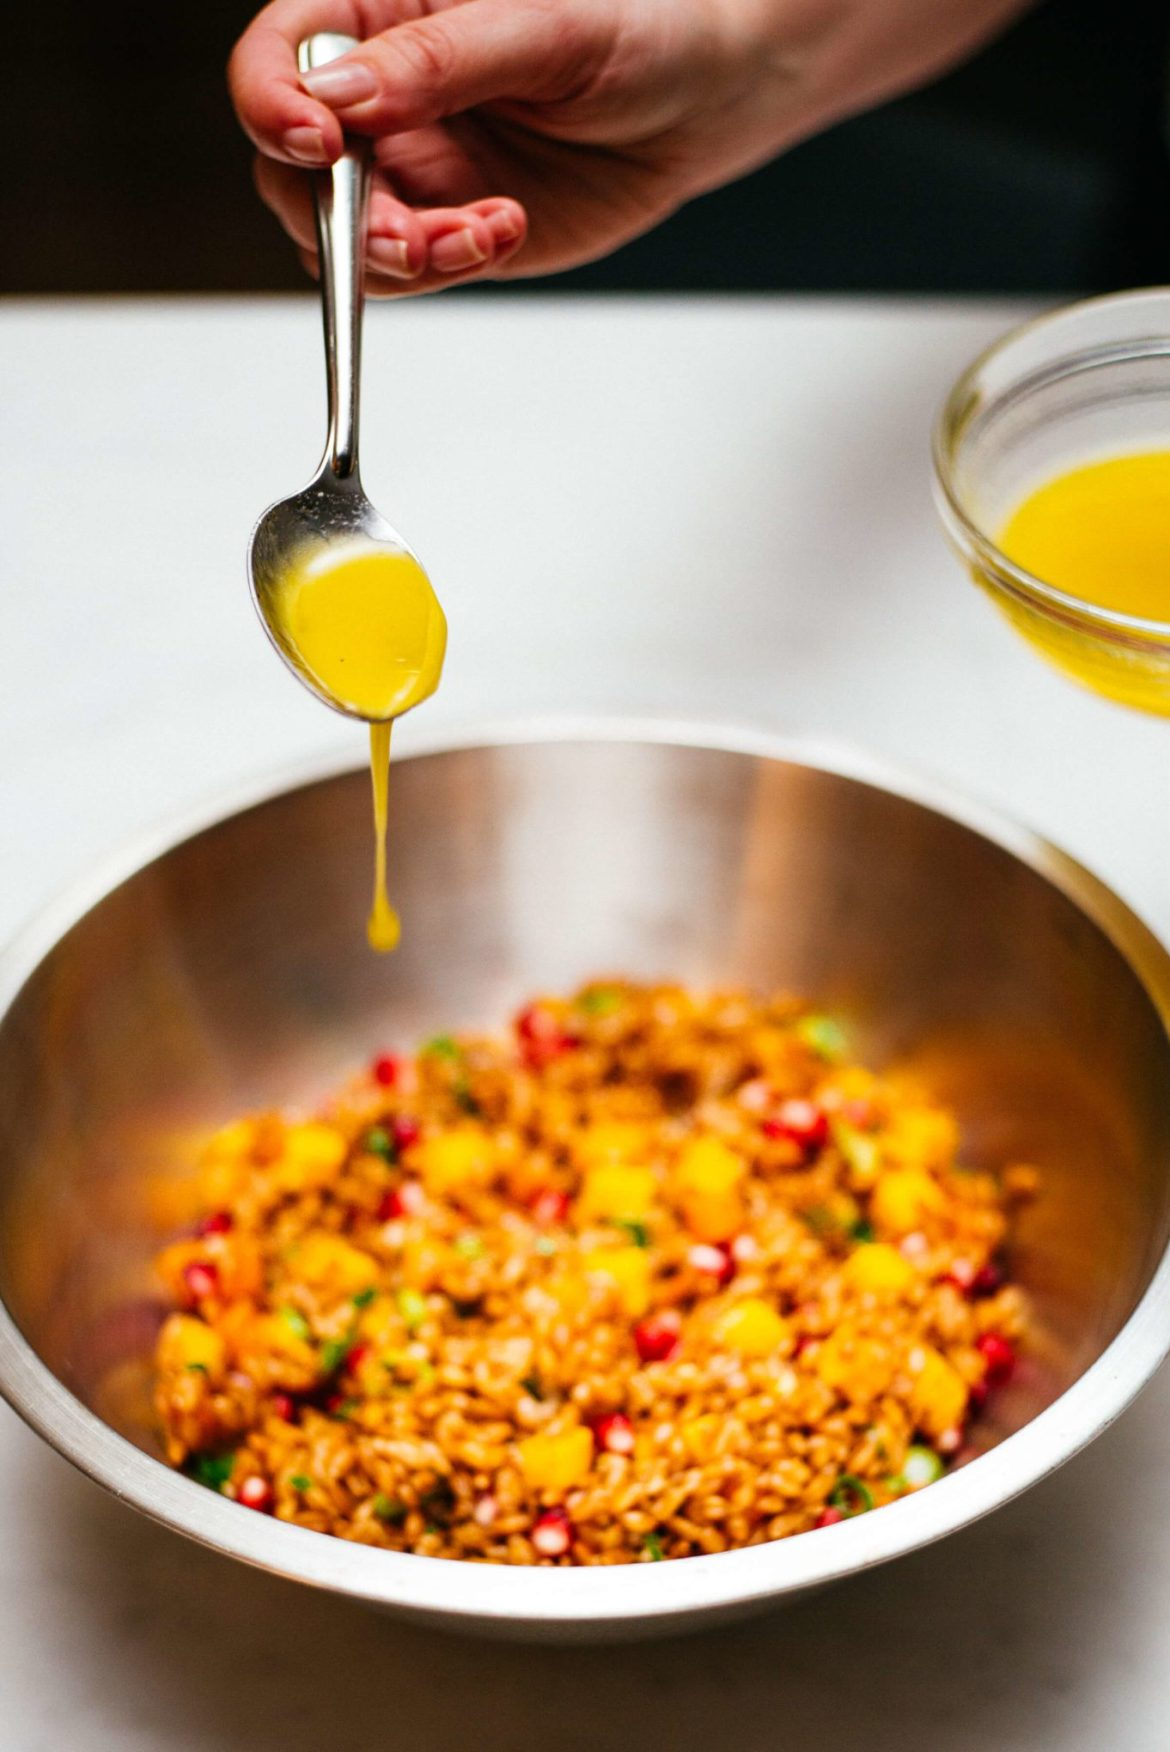 Adding the olive oil dressing to this farro salad